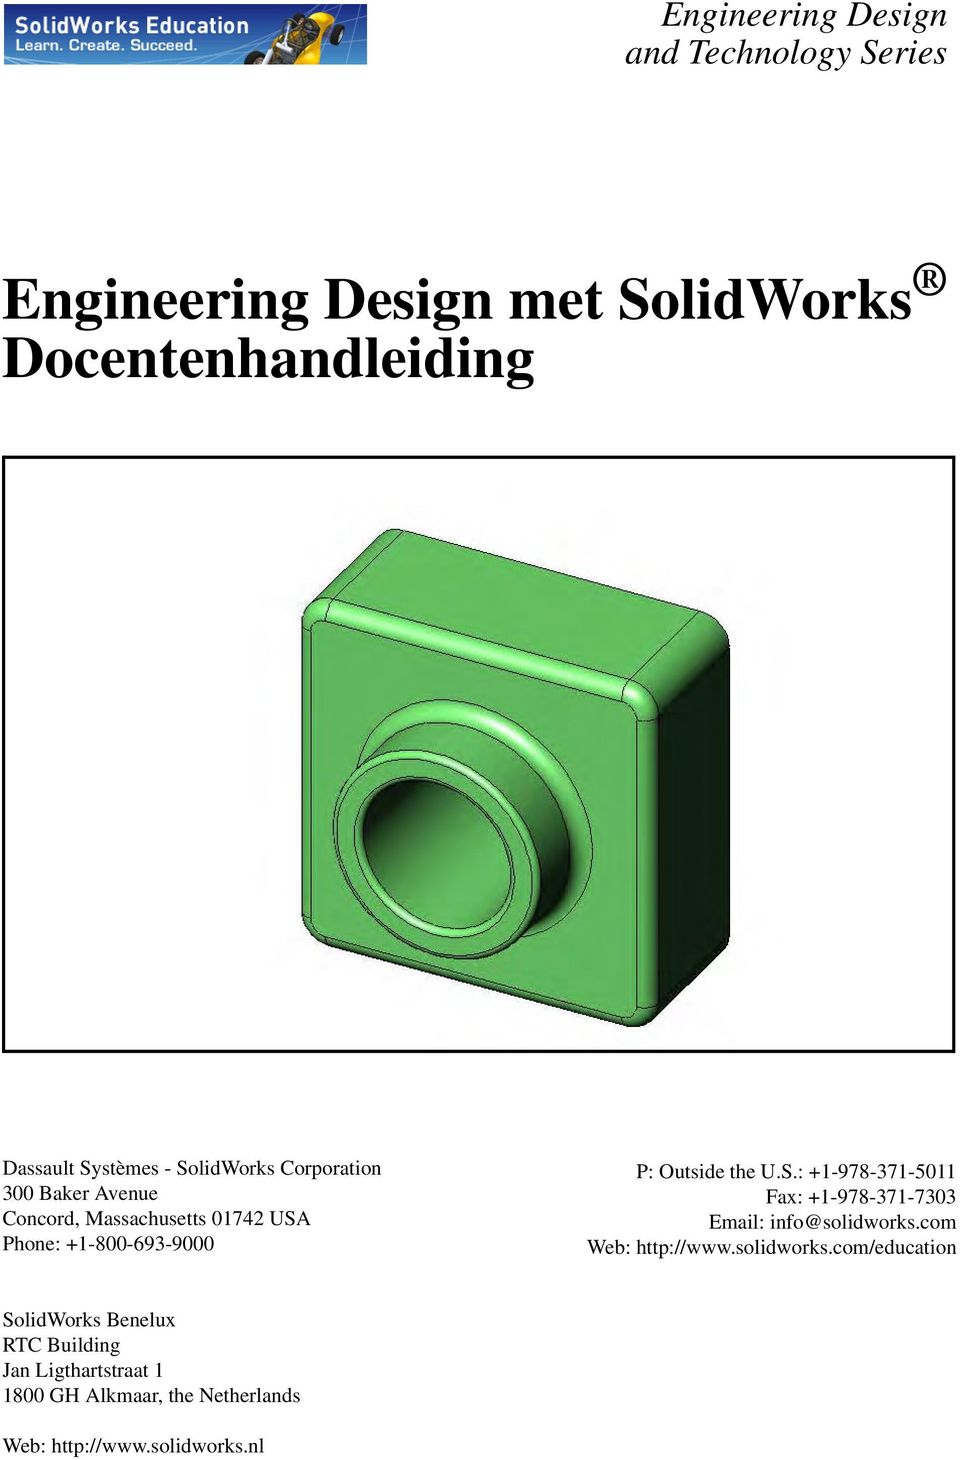 U.S.: +1-978-371-5011 Fax: +1-978-371-7303 Email: info@solidworks.